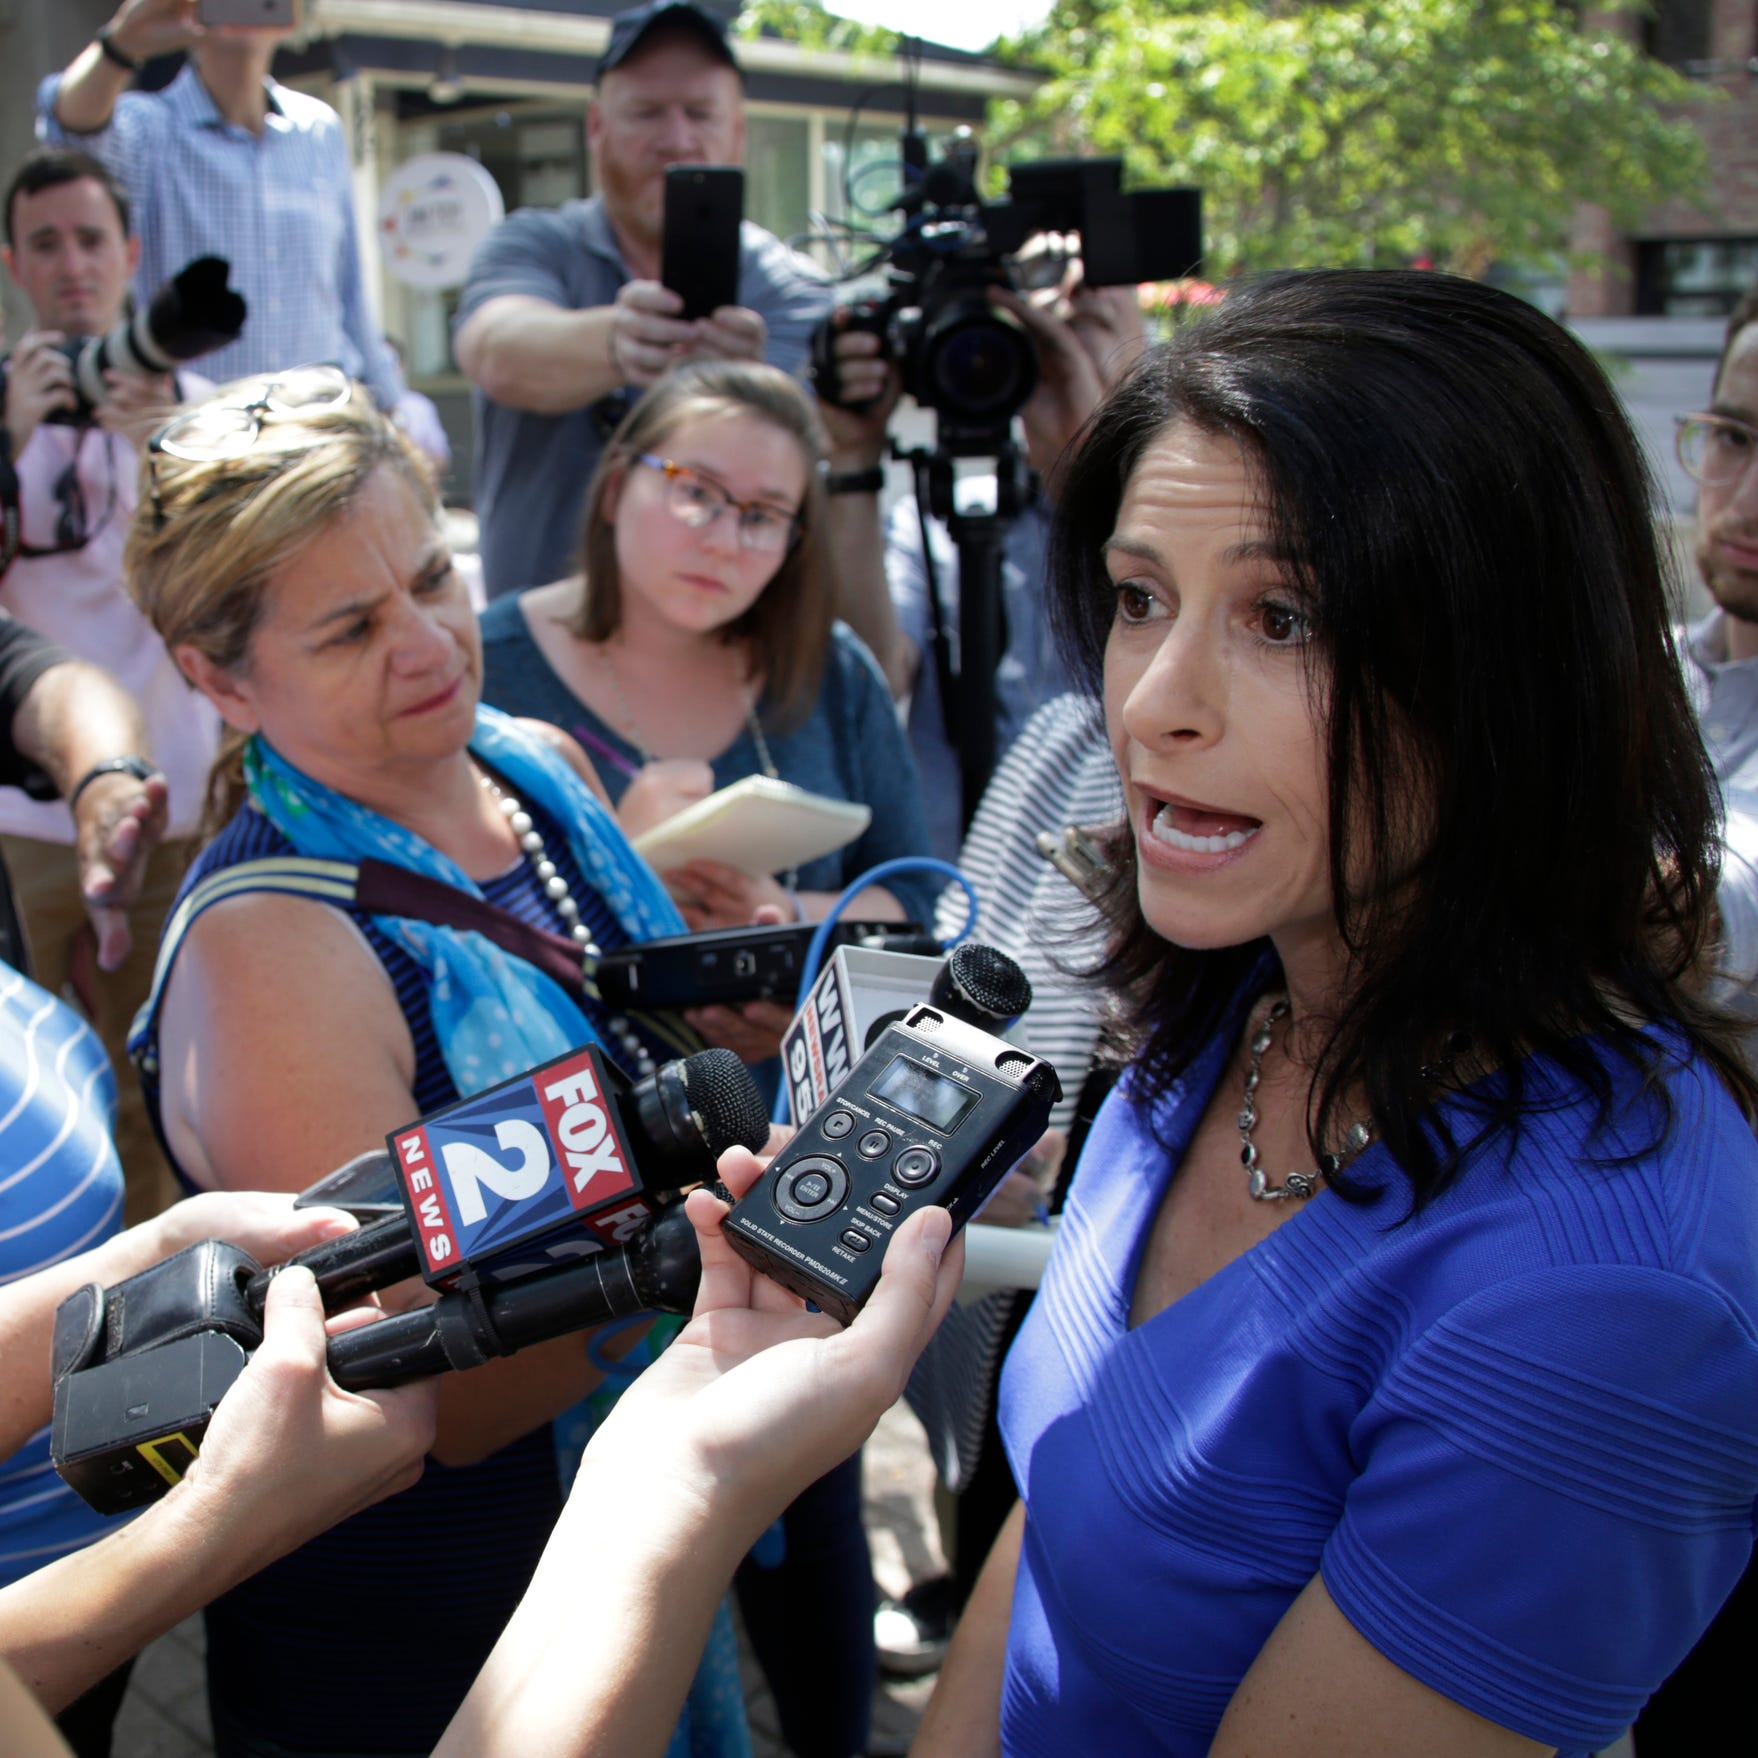 Attorney Dana Nessel is surrounded by media after she announces her bid for Michigan Attorney General in Ann Arbor Tuesday Aug. 15, 2017.